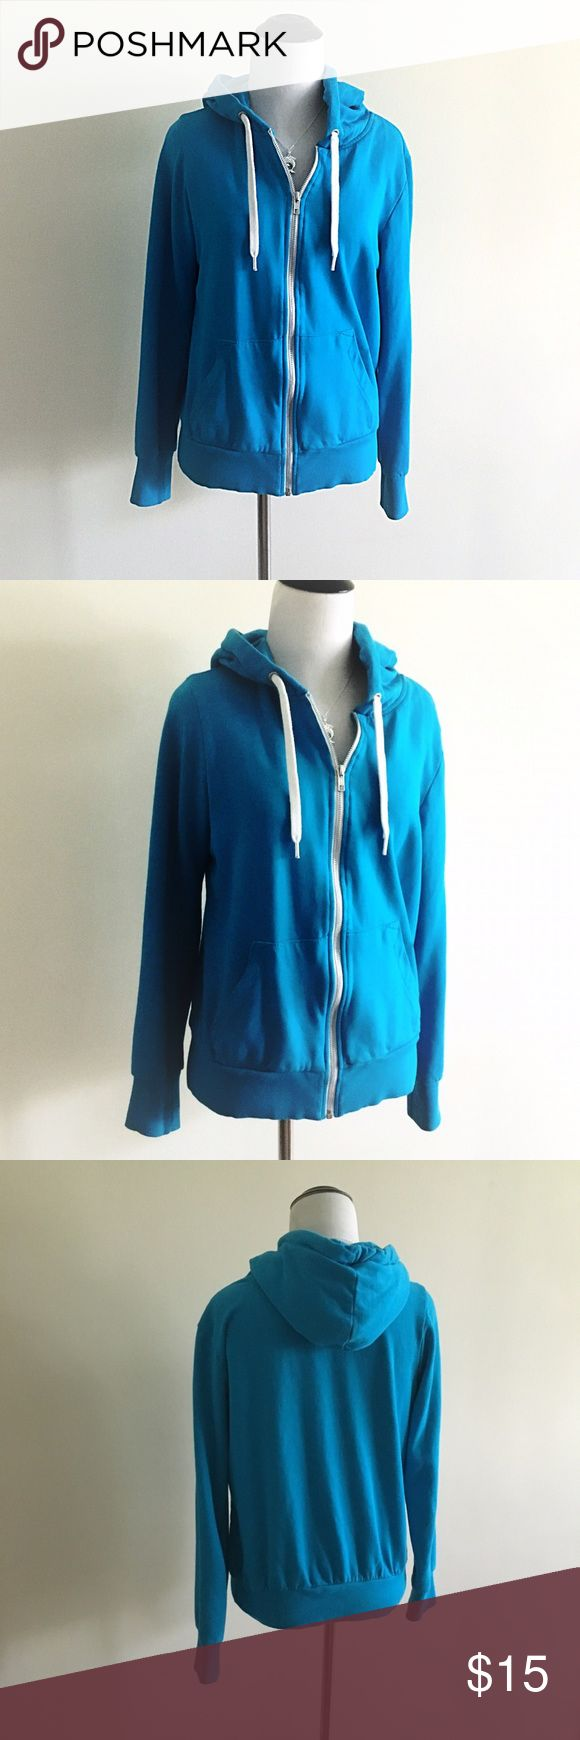 Divided H&M blue zip up hooded sweatshirt Divided H&M blue zip up hooded sweatshirt.  Practically new worn once in great shape. Divided Jackets & Coats